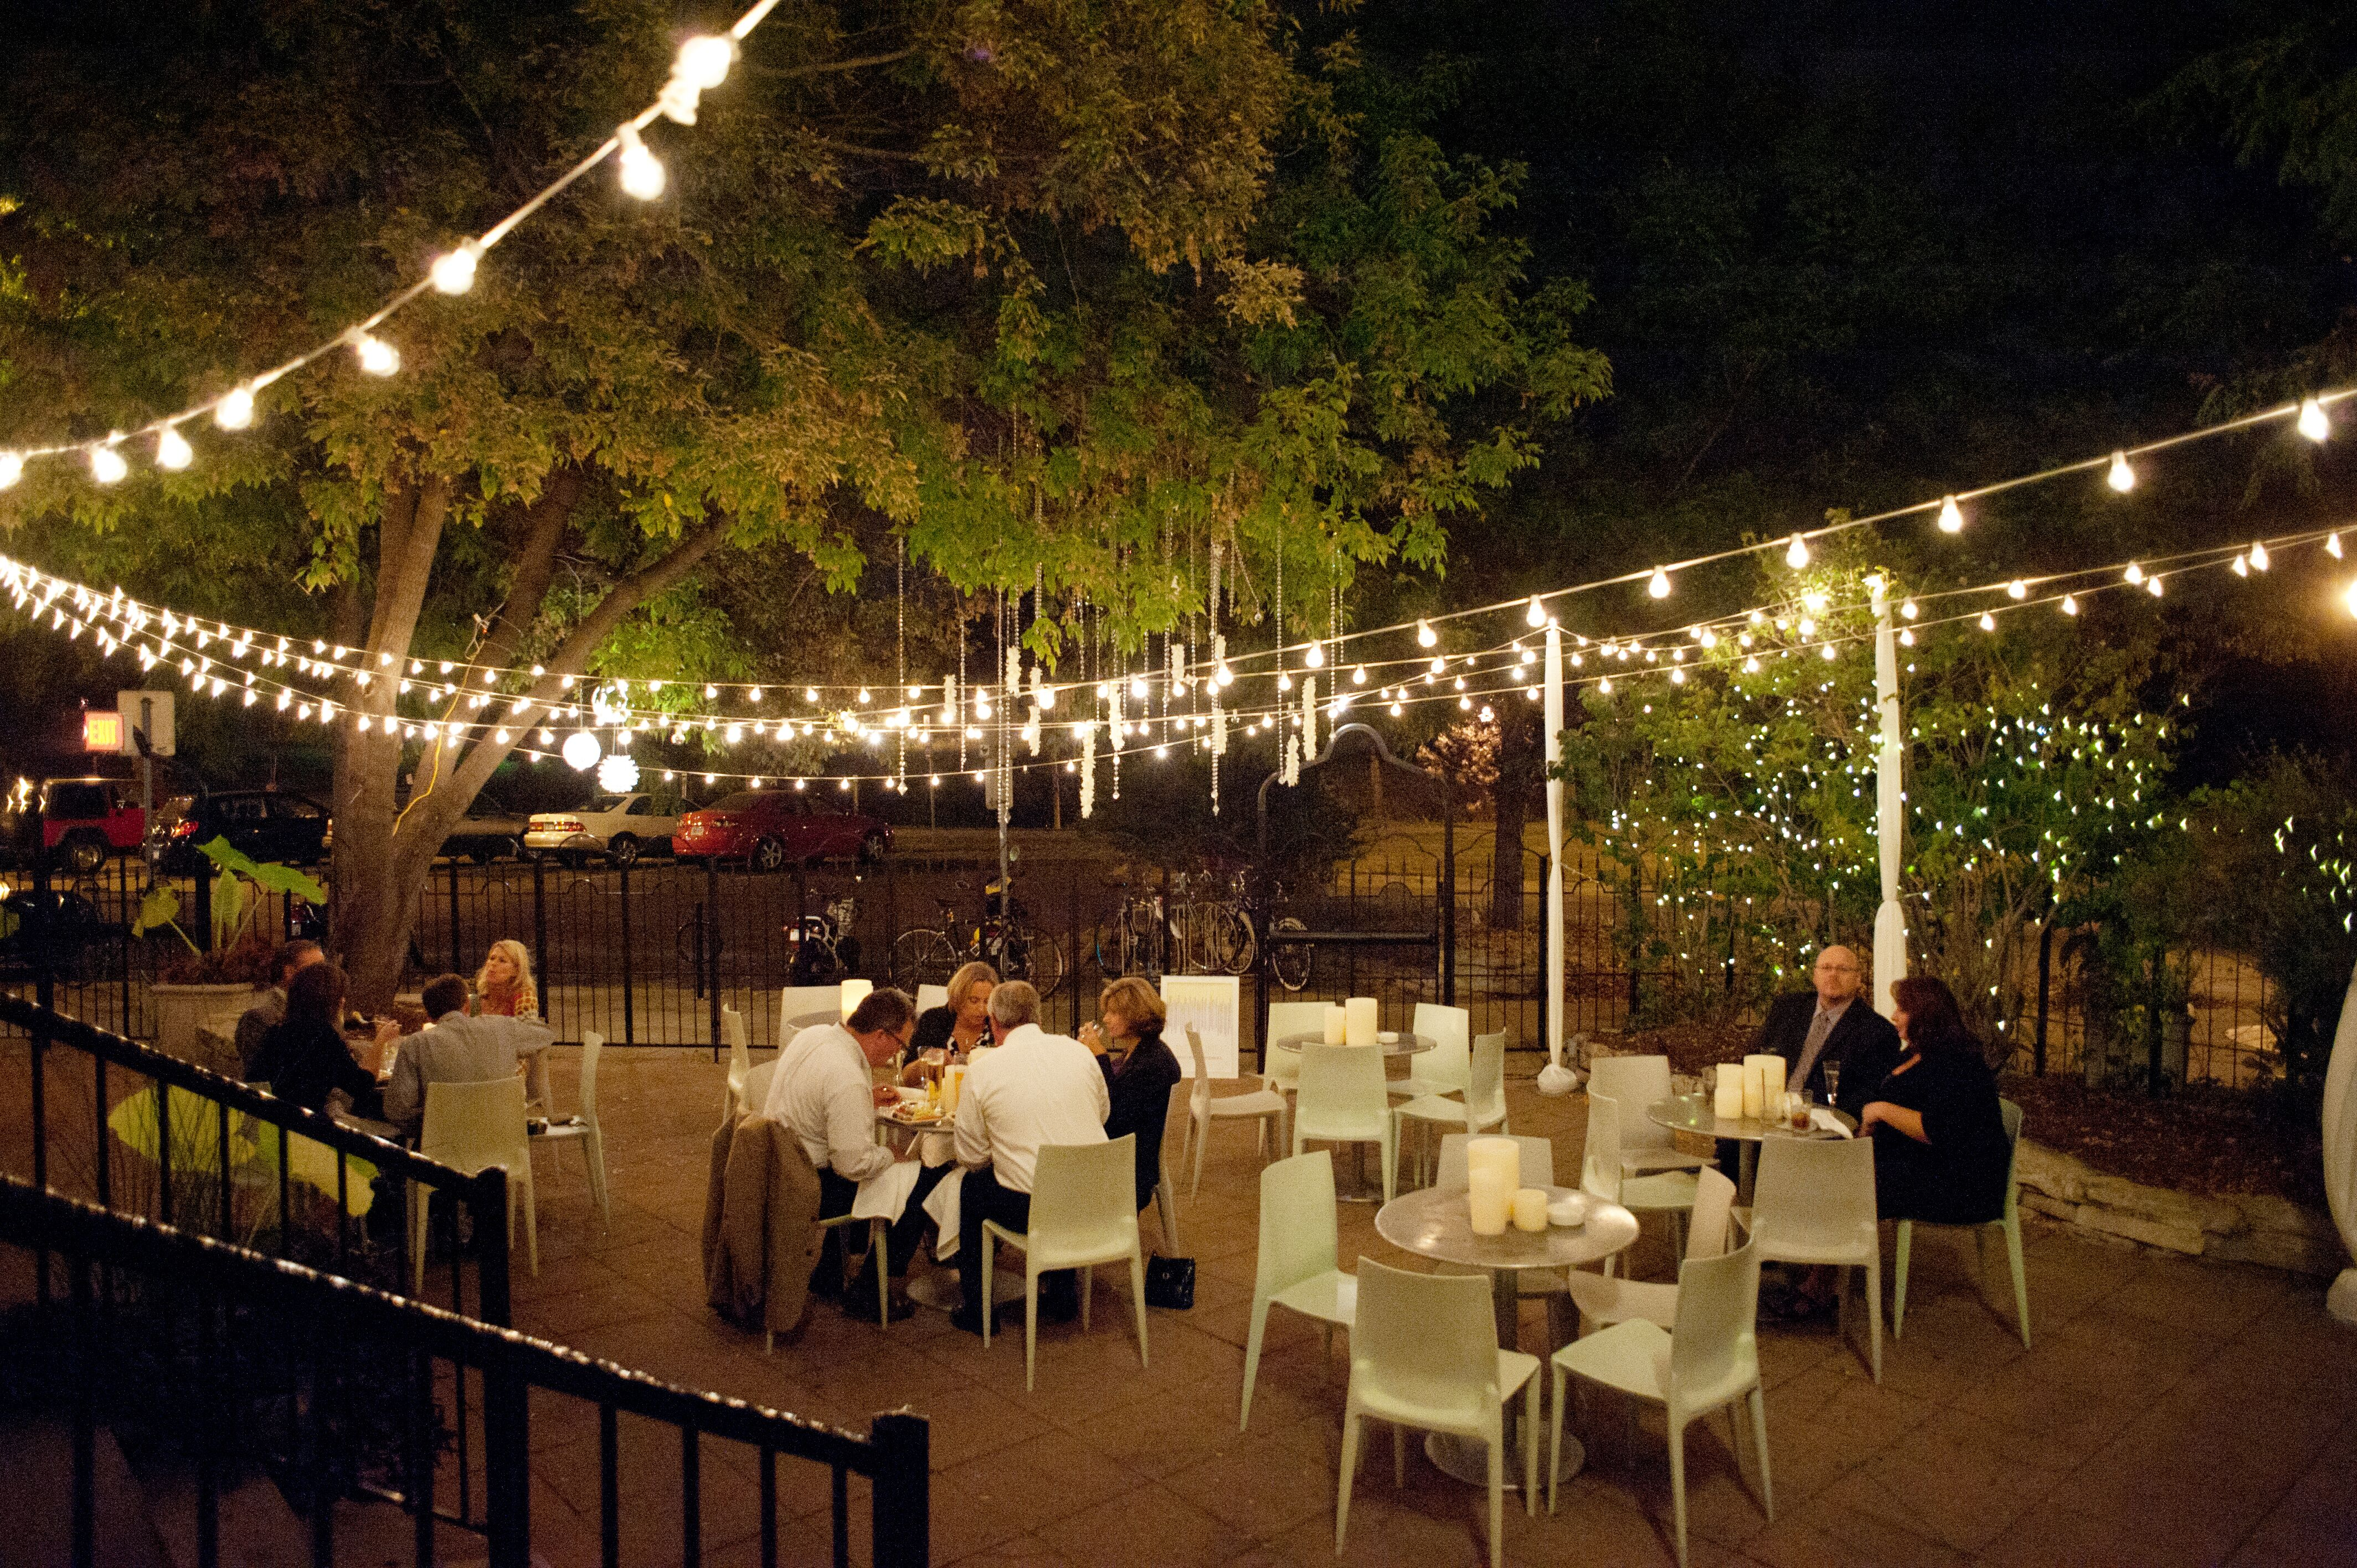 The Outdoor Nighttime Reception with String Lights at Cafe & Bar Lurcat